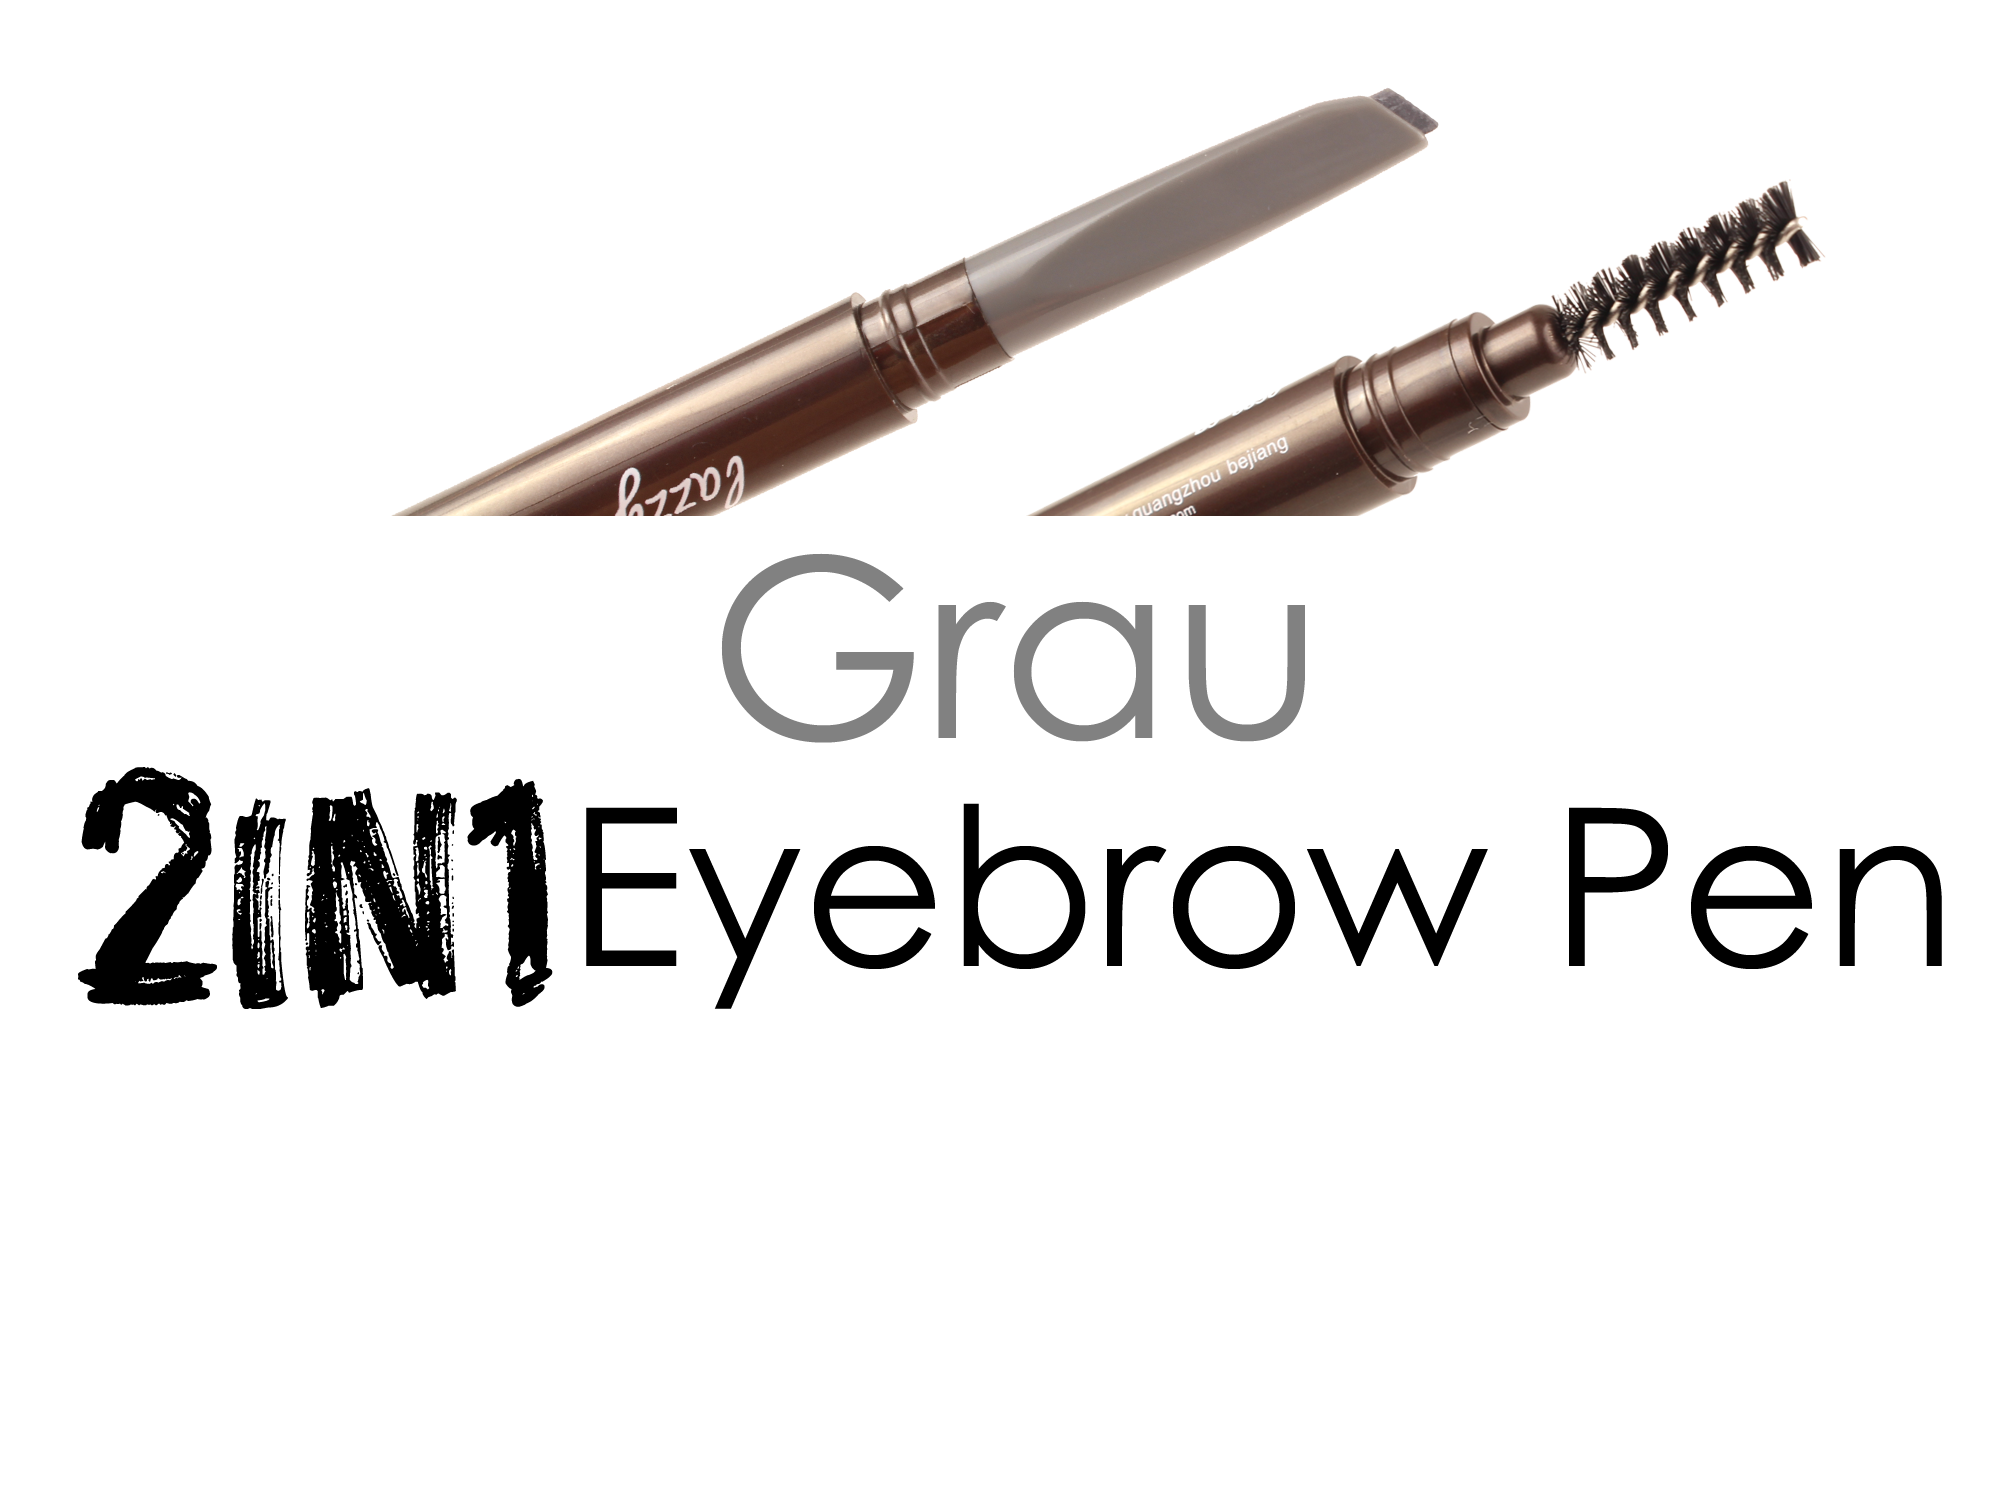 Eyebrow Pen, Augenbrauenstift Magnet Wimpern kaufen, Carrys Lash Magnetic Lashes Magnet Wimpern Test Lash Lover Falsche Wimpern kaufen